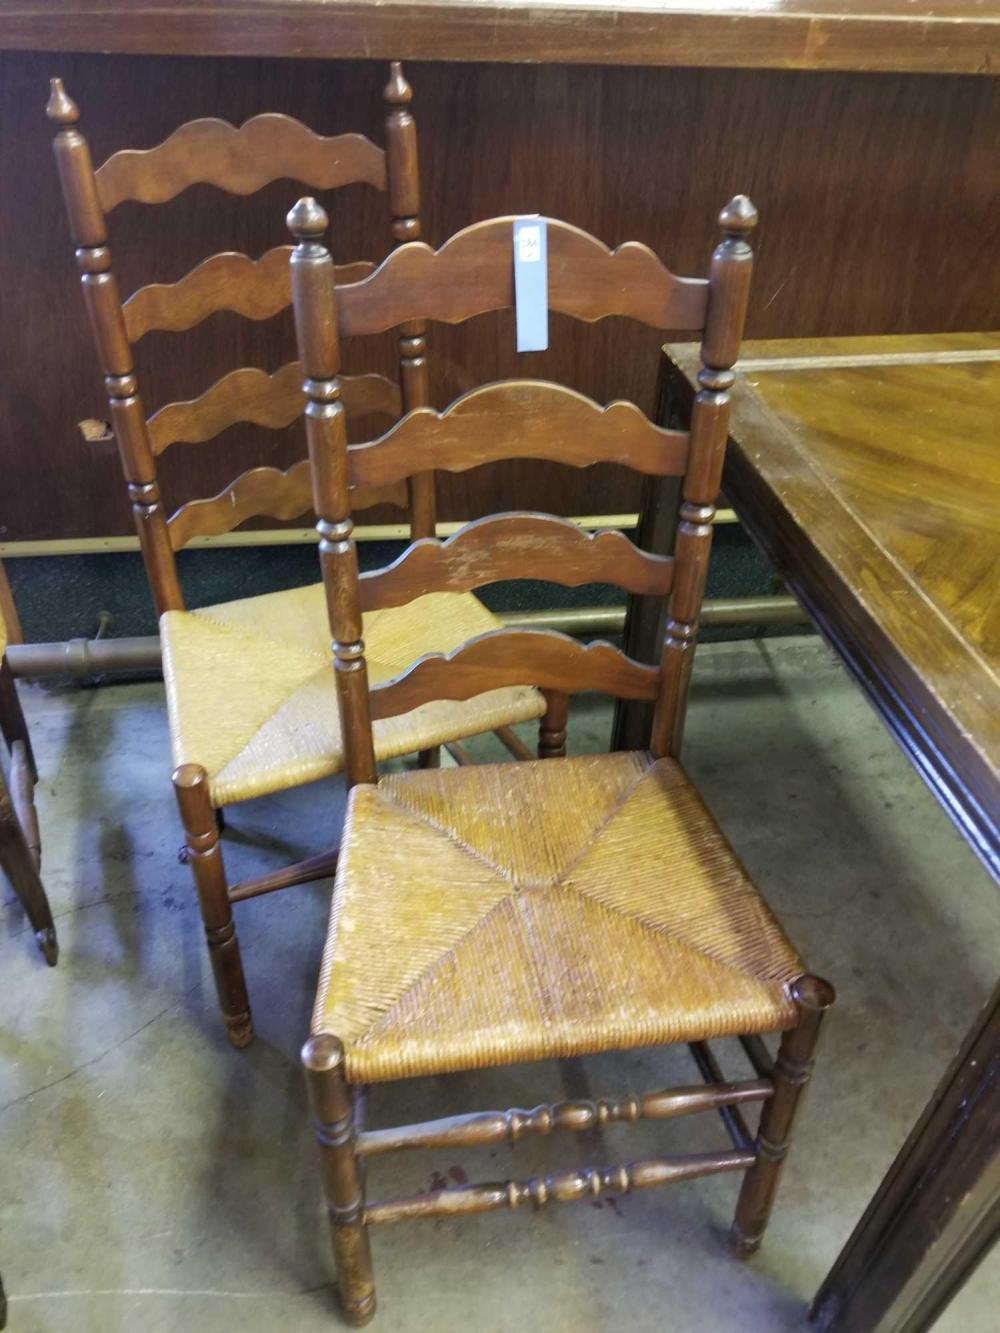 LADDER BACK RUSH BOTTOM VINTAGE CHAIRS - 2 ITEMS